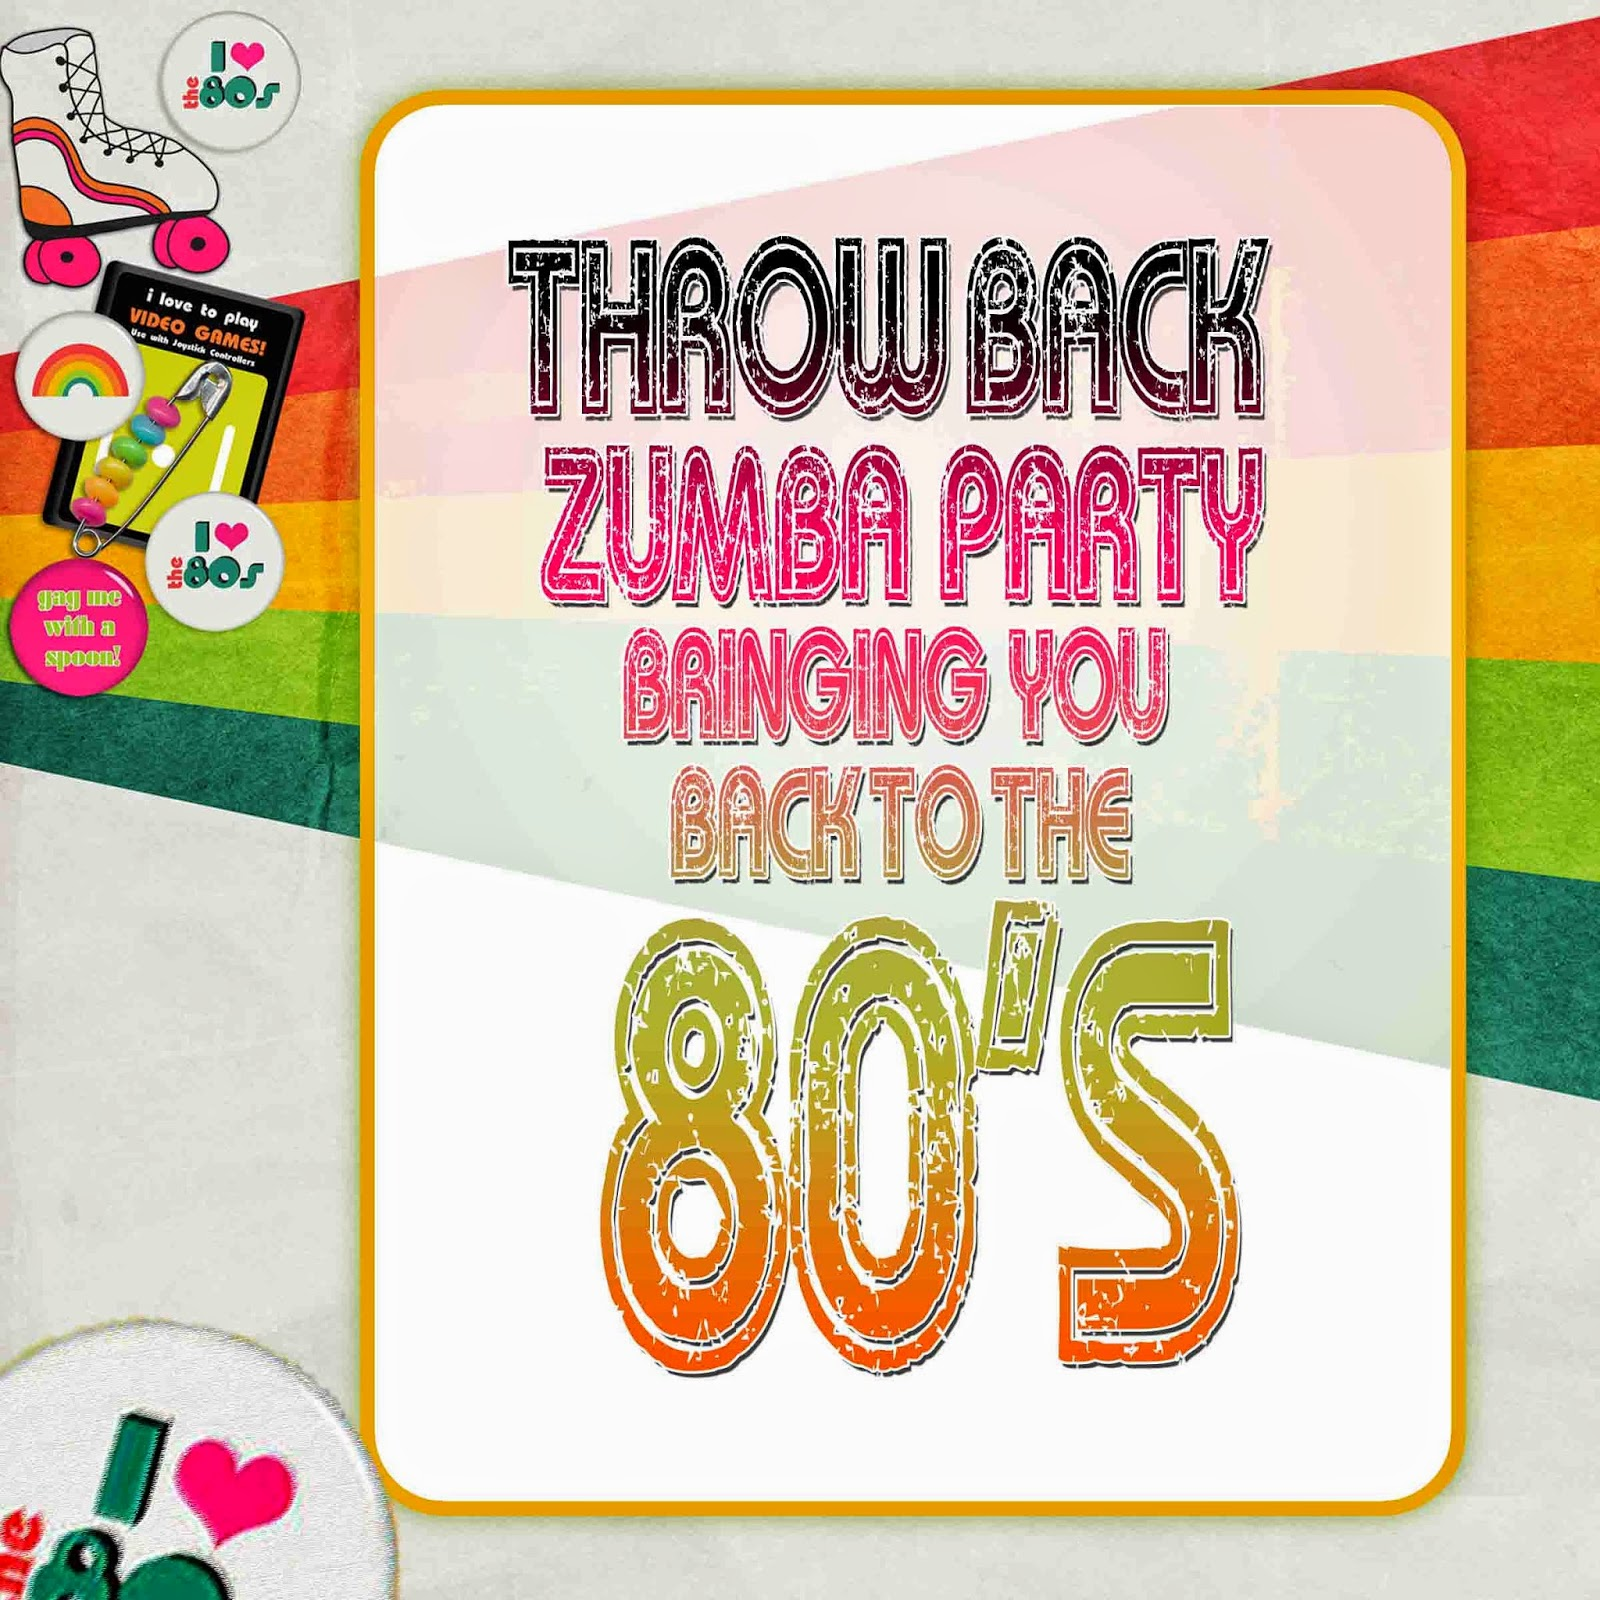 Throwback Zumba Party Posh Nails Launches New Manicure And Pedicure